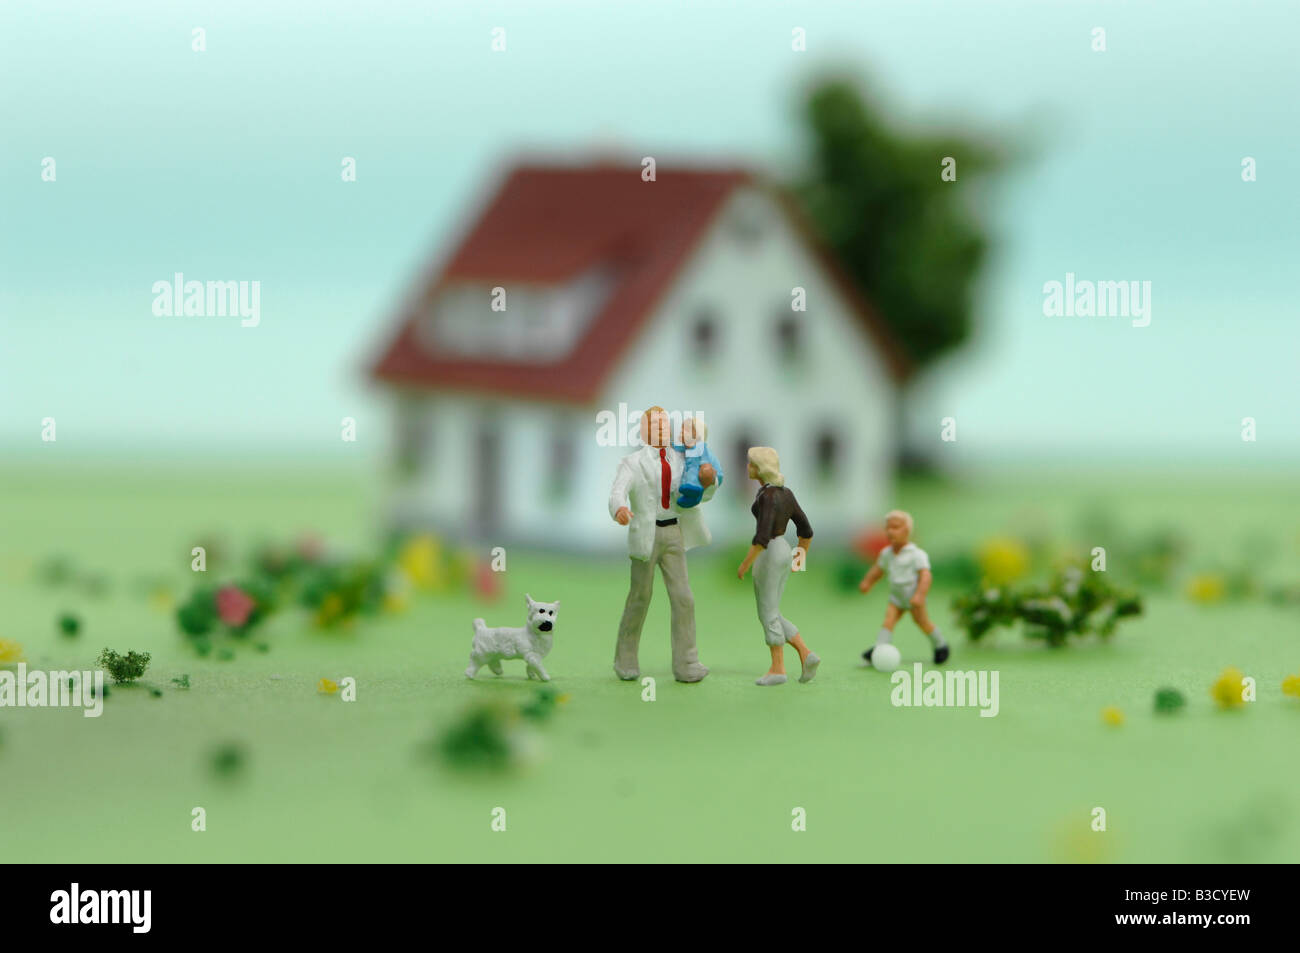 Plastic figurines in front of house - Stock Image